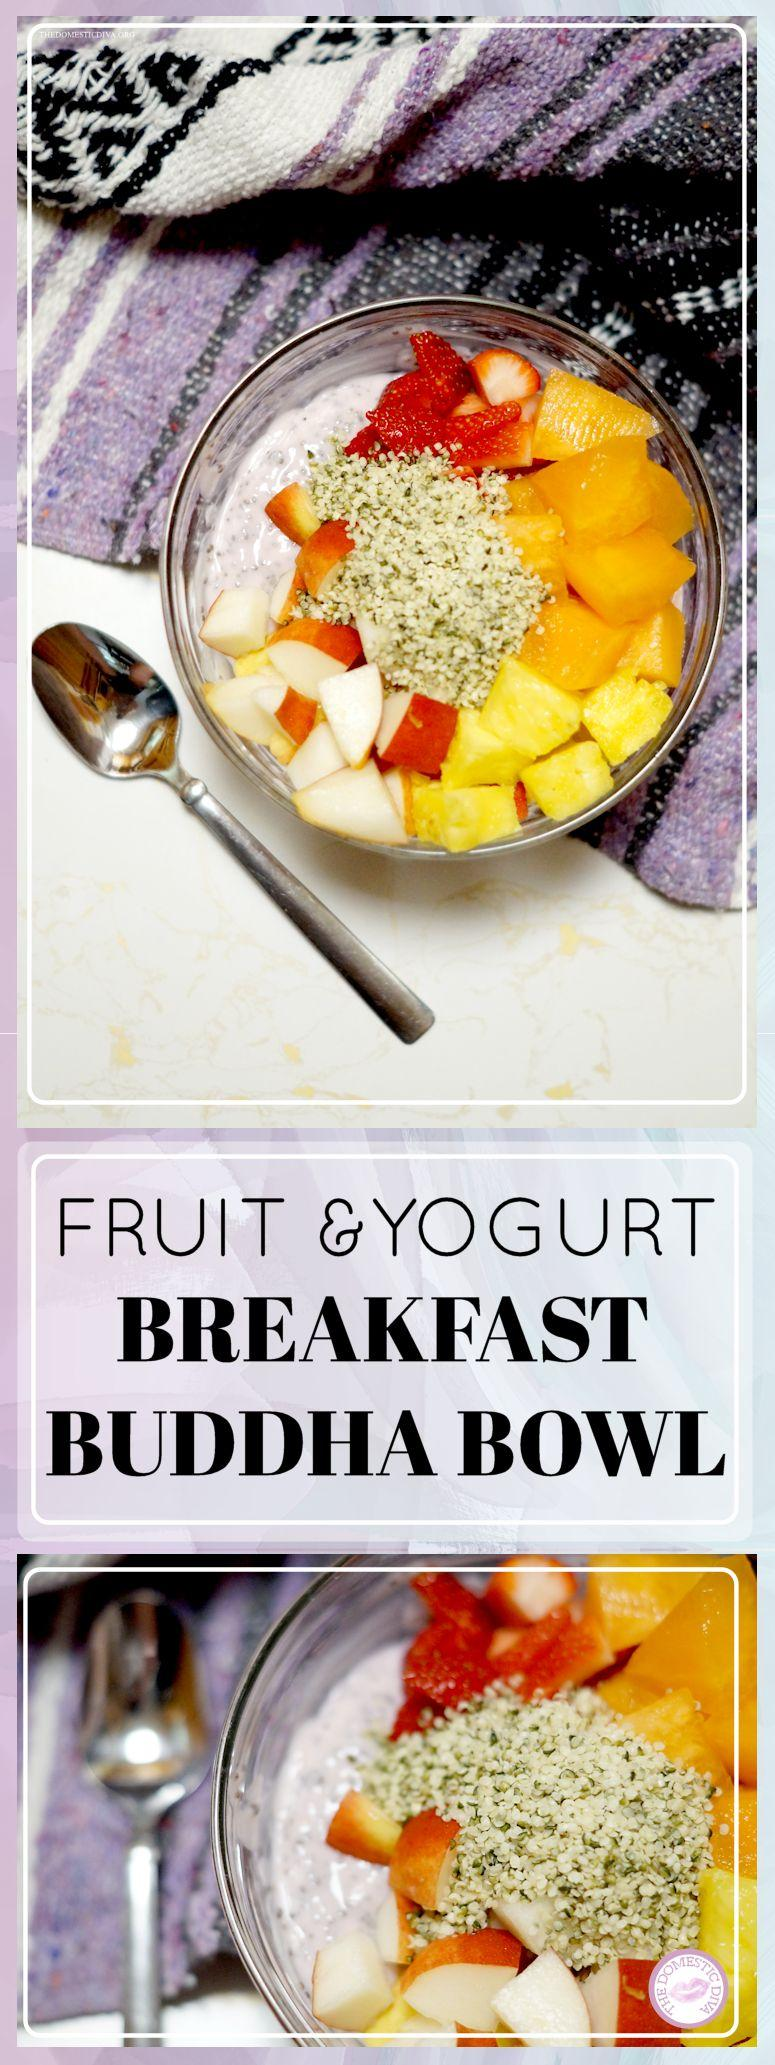 Fruit & Yogurt Breakfast Buddha Bowl recipe